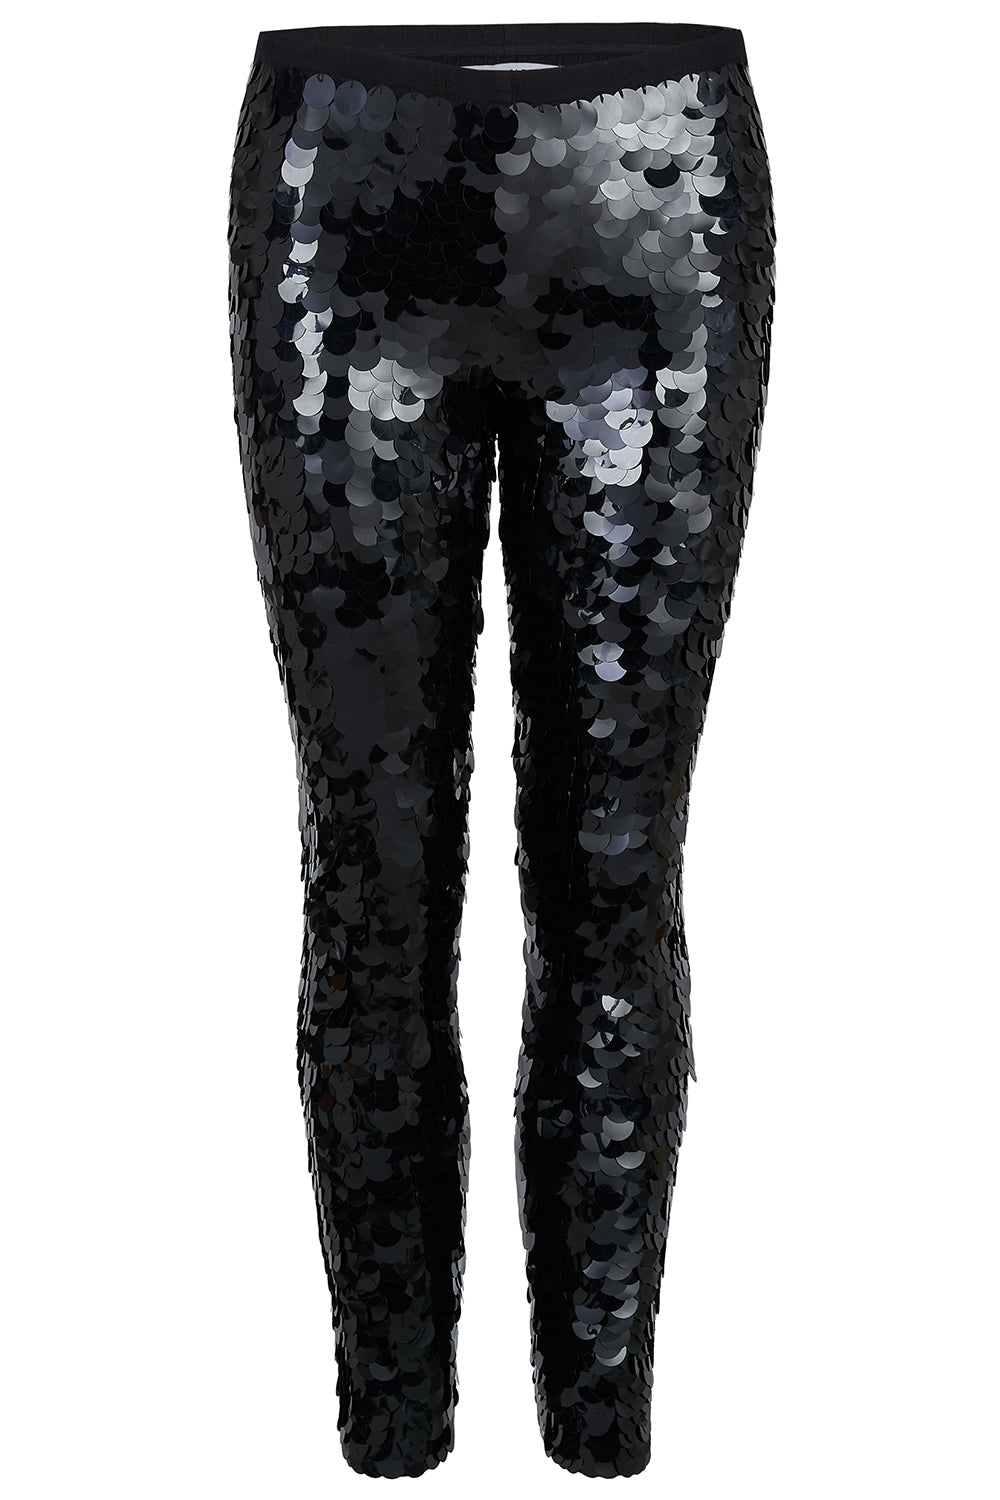 INDUS SEQUIN LEGGINGS - BLACK